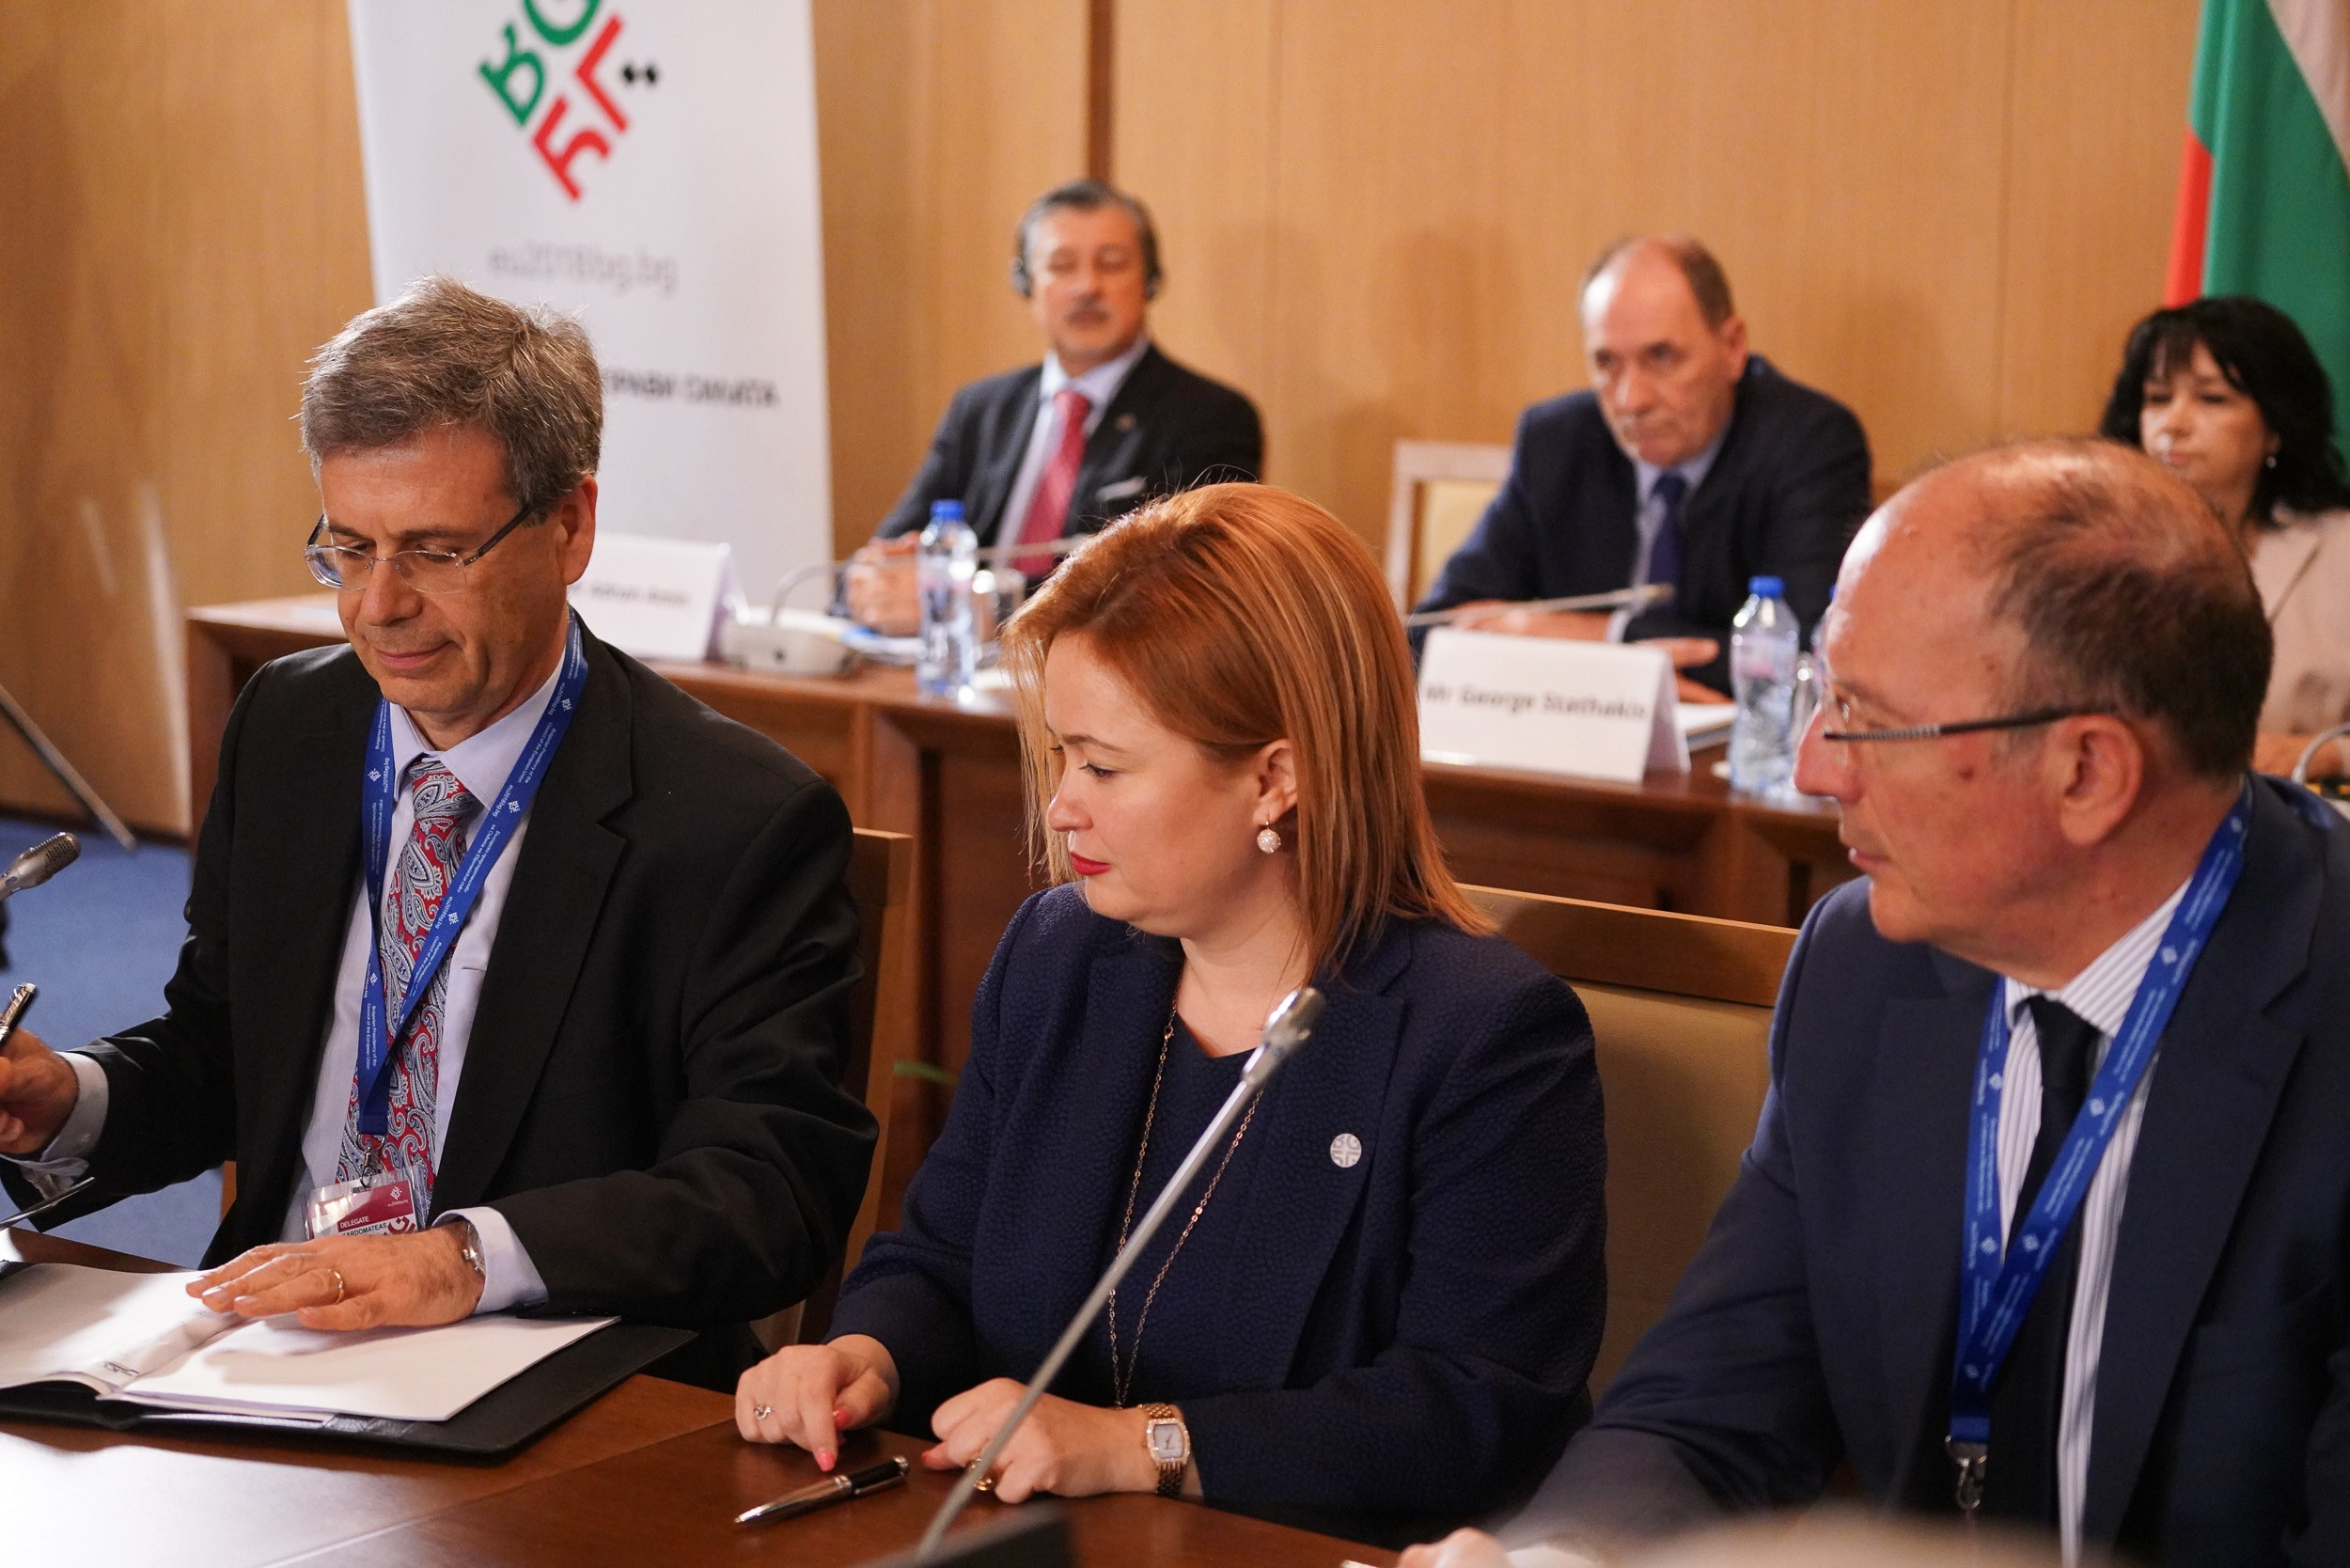 Bulgaria's BEH, EIB sign MoU on gas link construction - ICGB